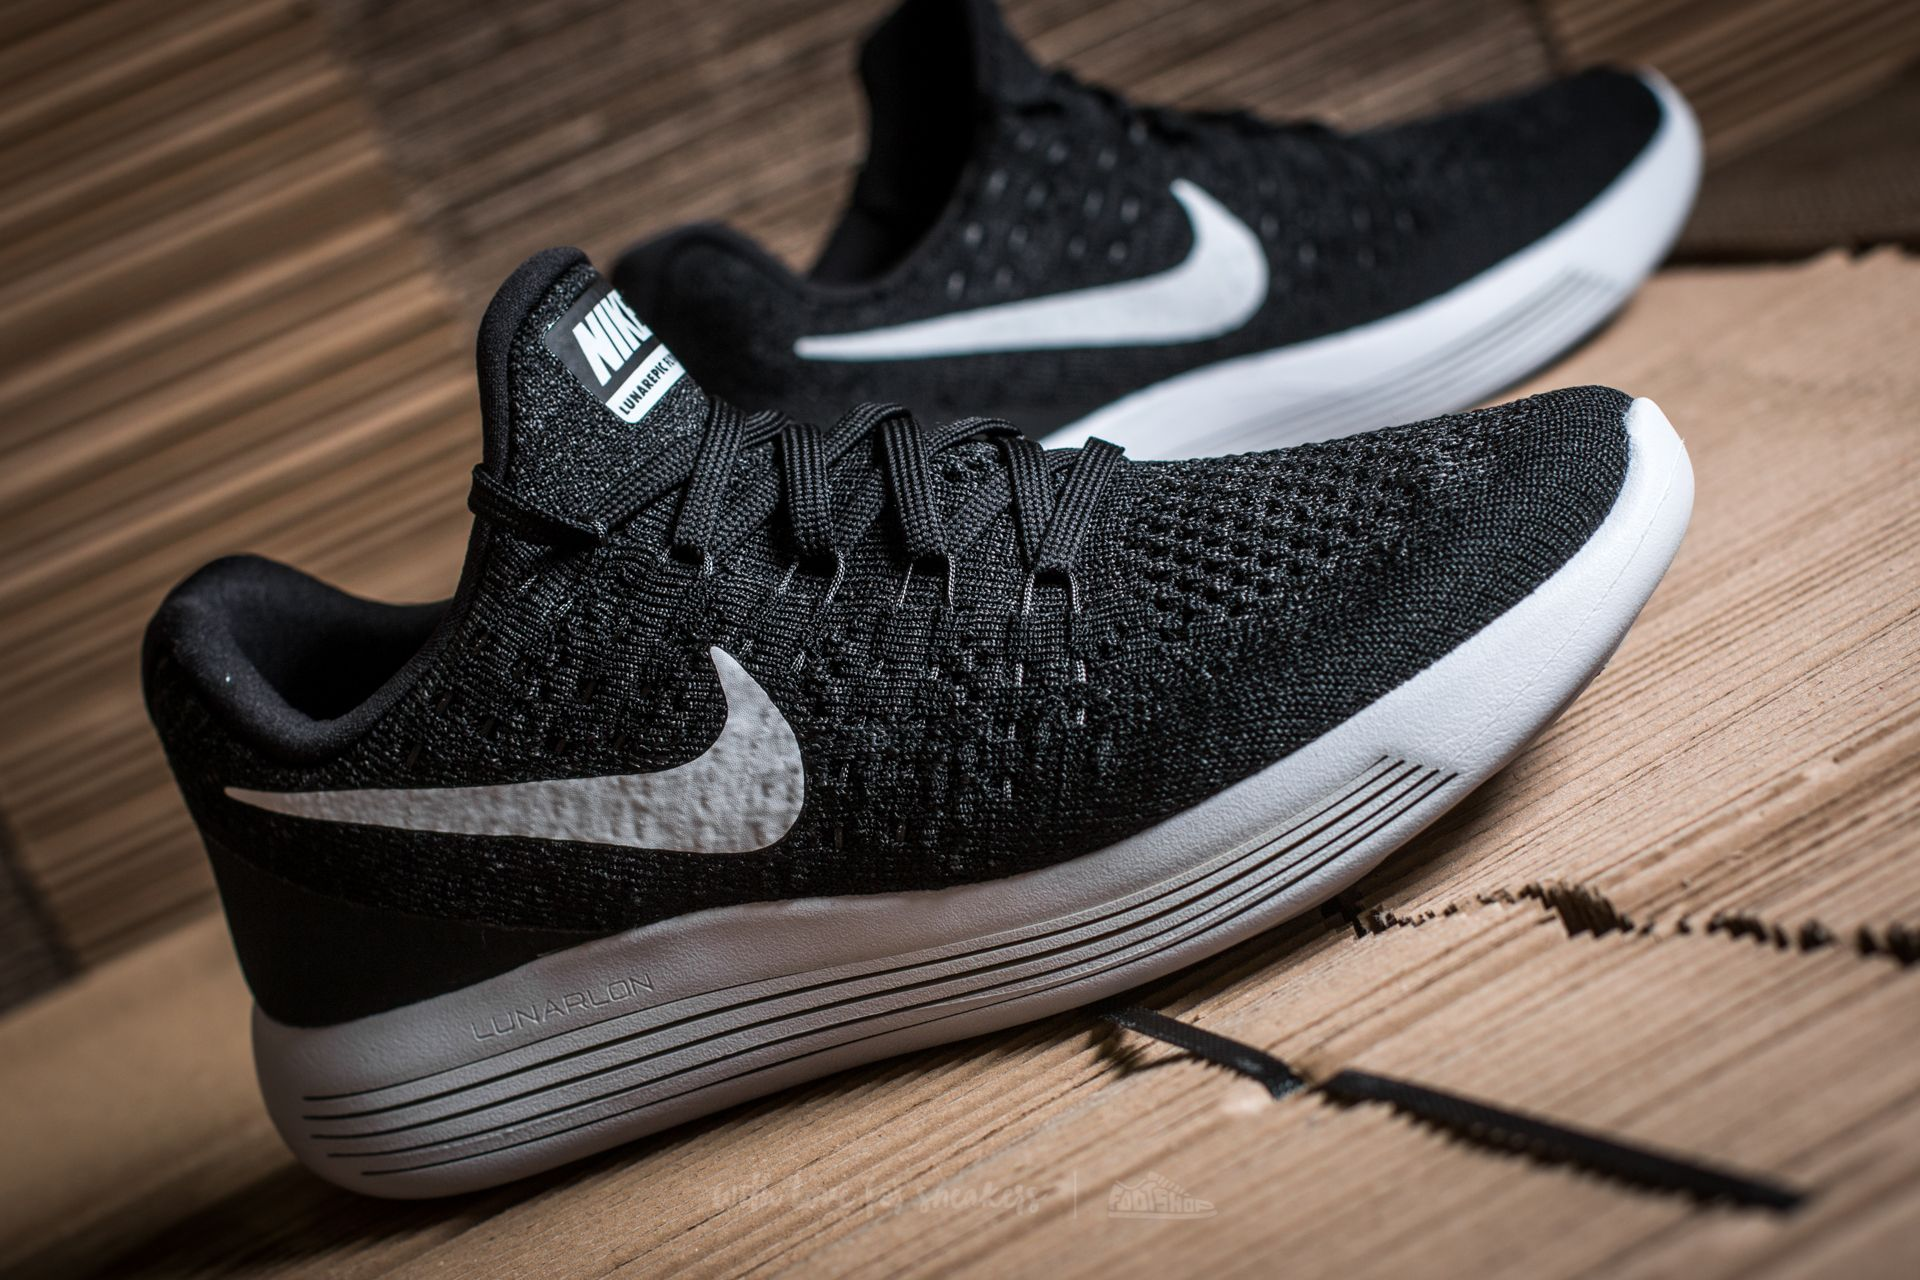 newest 9a421 8f7ed NIke W Lunarepic Low Flyknit 2 Black/ White-Anthracite ...